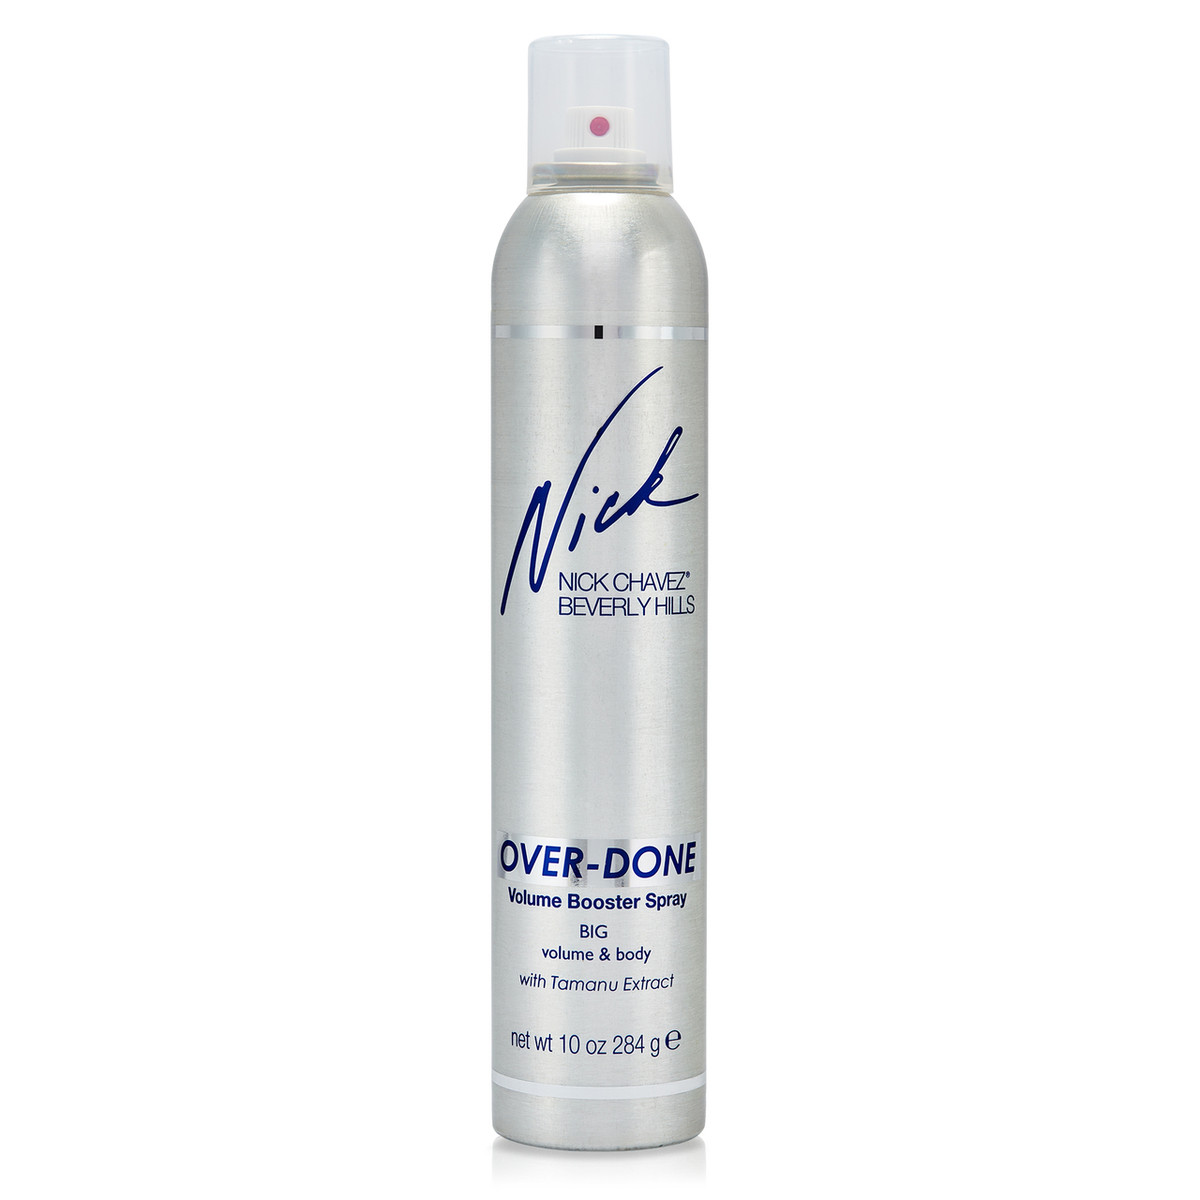 Over-Done Volume Booster Spray